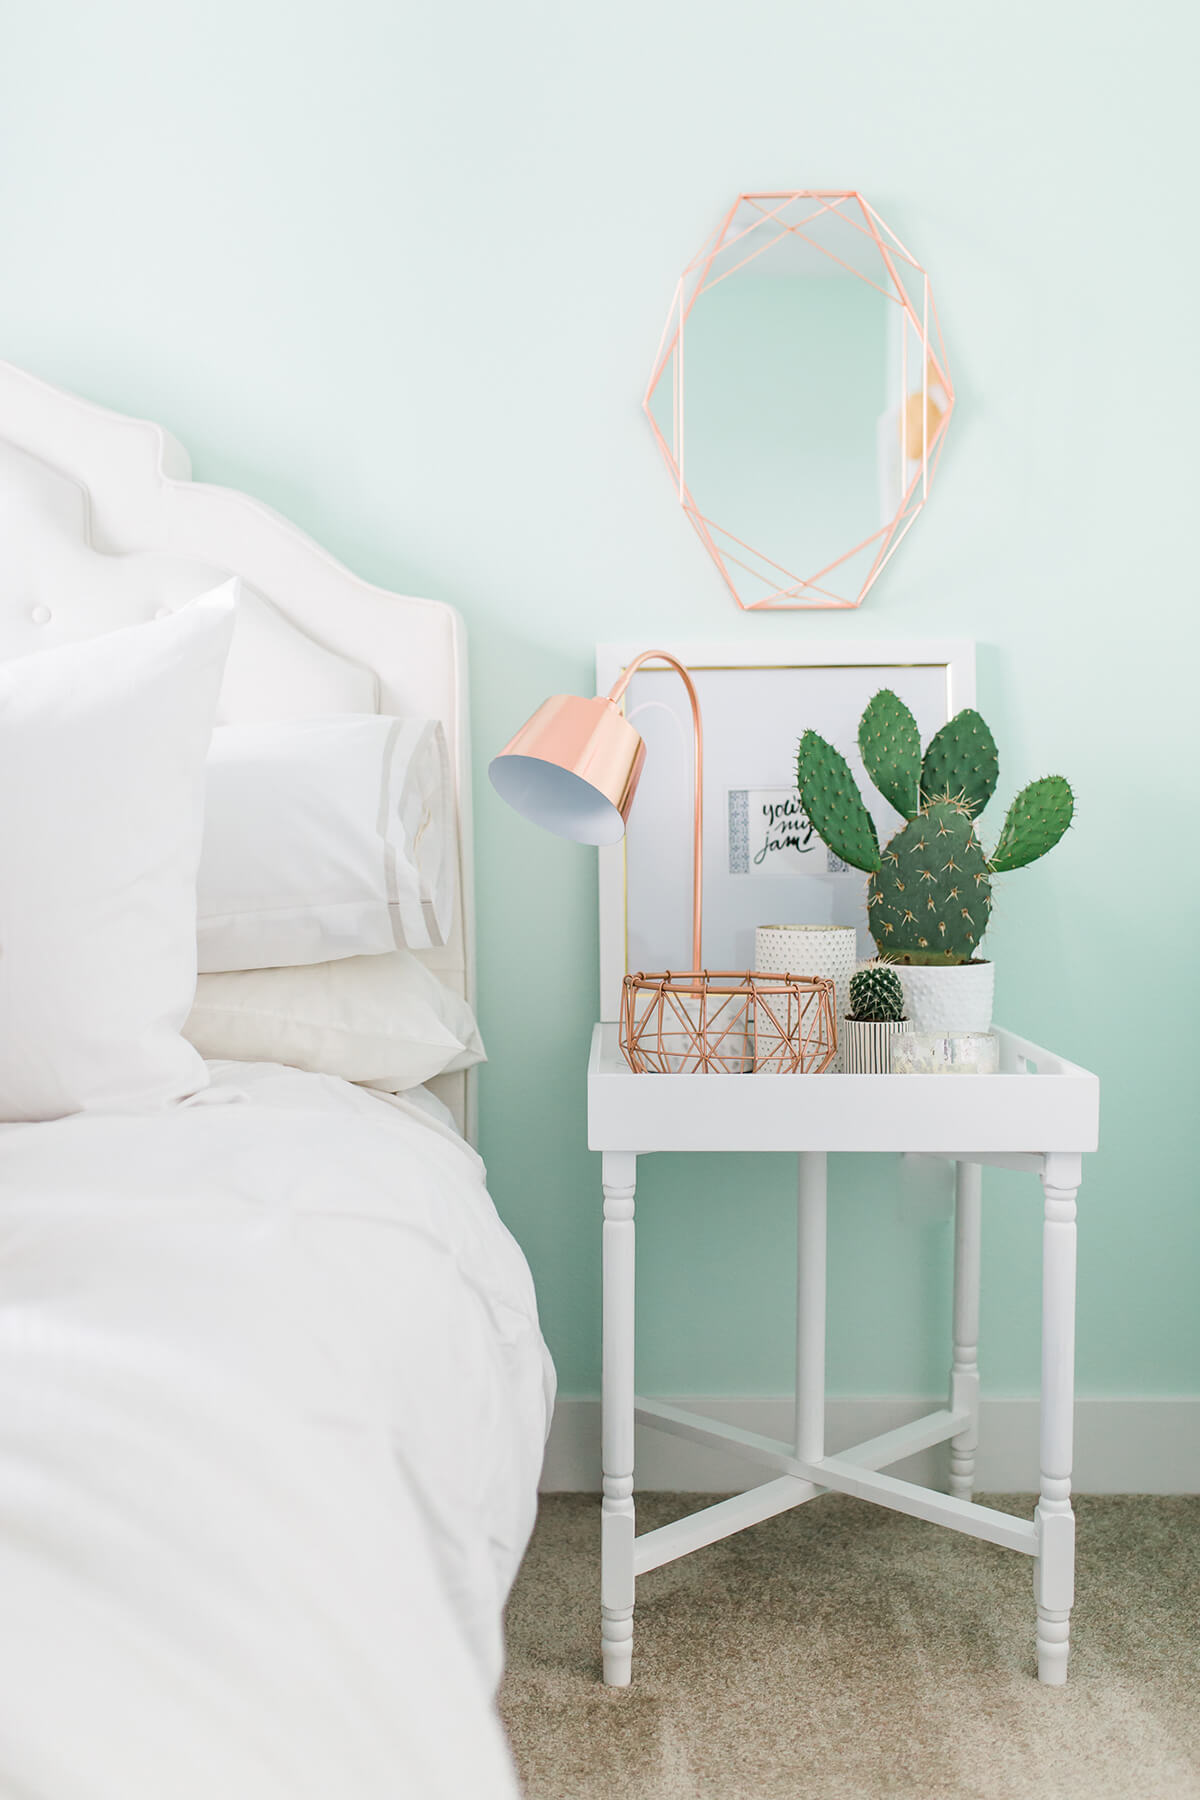 14 Best Trendy Bedroom Decor And Design Ideas For